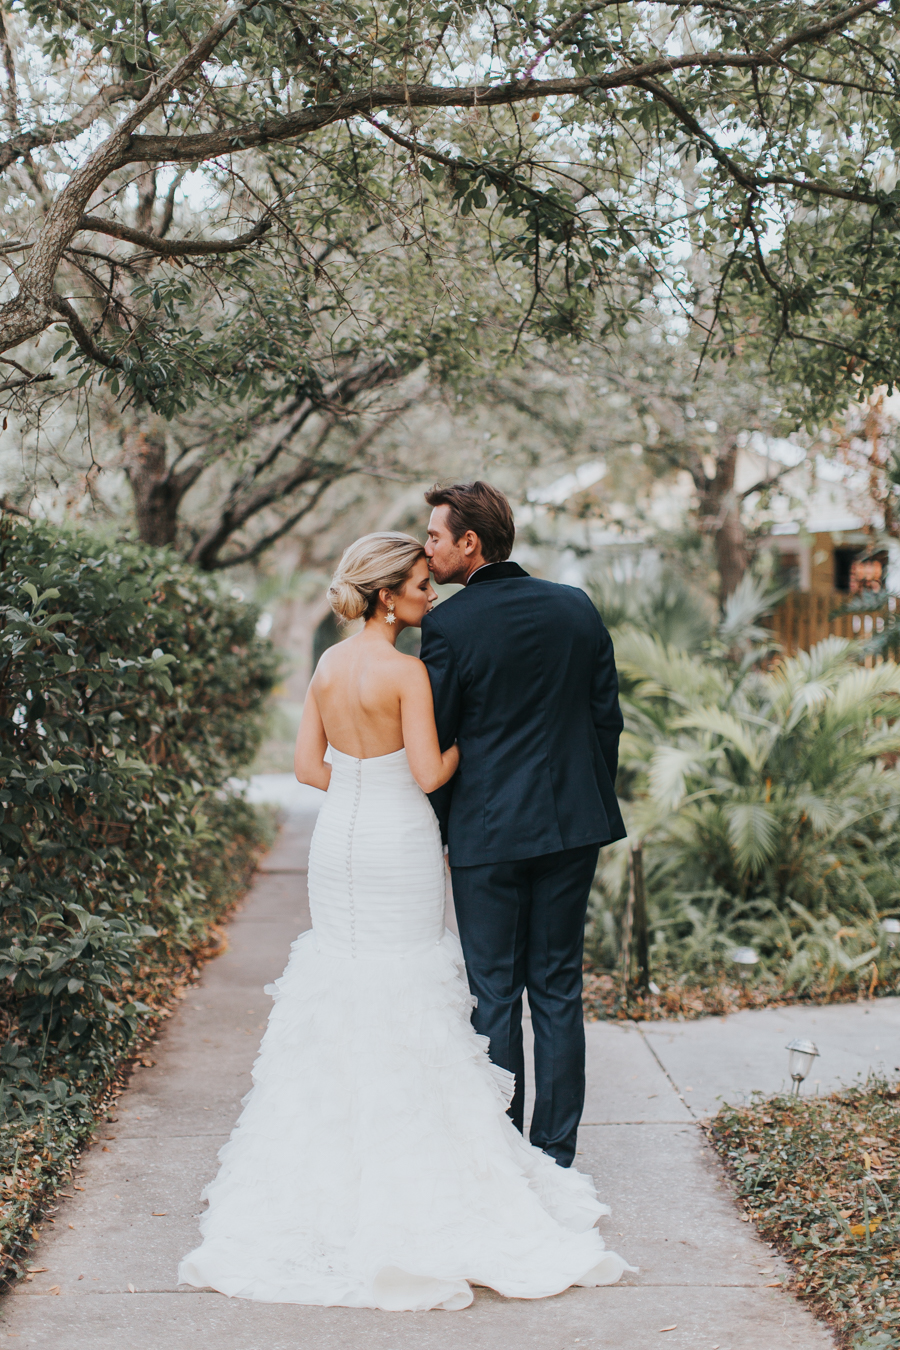 Loren and Alex Kuznetsov Gold and Burgundy wedding at Epicurean Tampa Royal Fall Wedding in Tampa Florida Inside Weddings MD Events Tampa-123.jpg